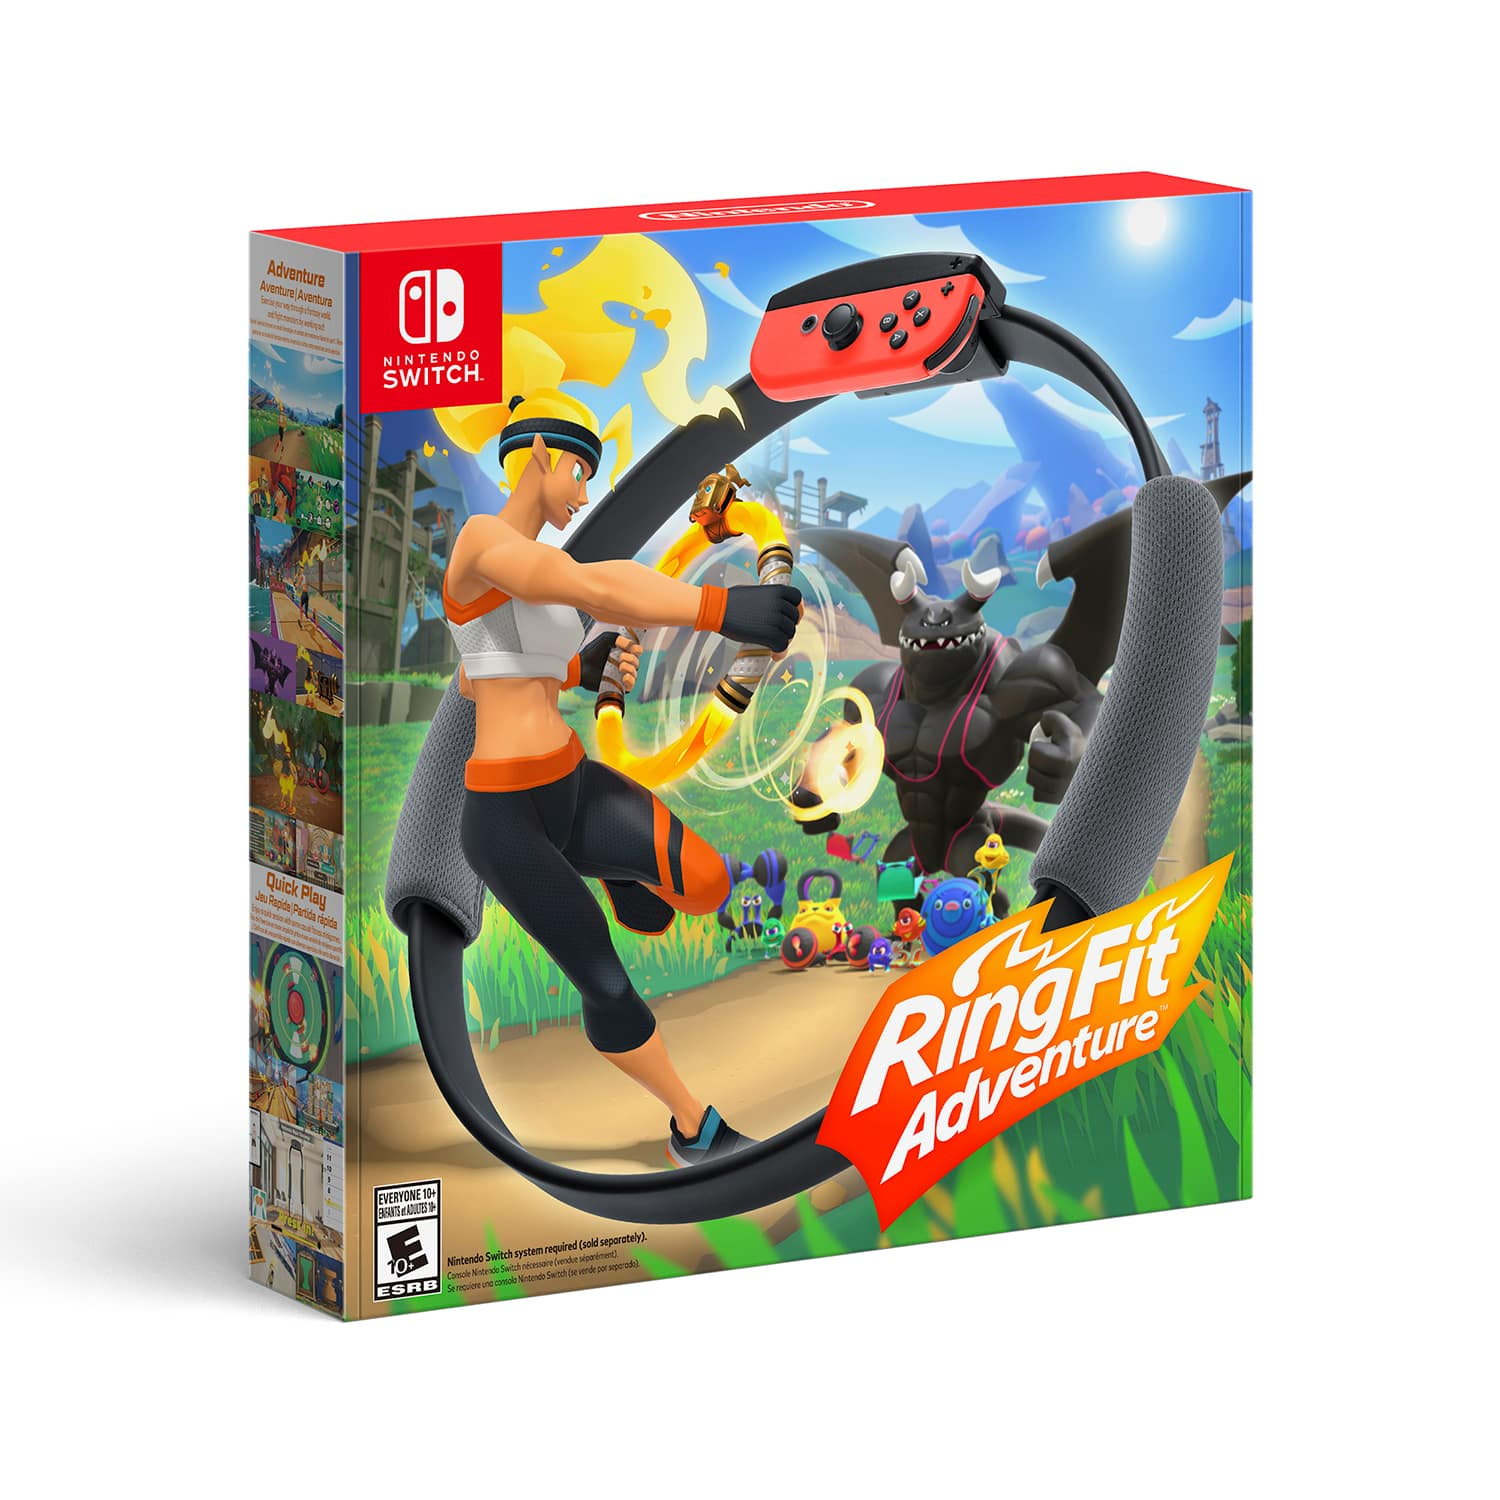 Ring Fit for Nintendo switch 69.99 at Walmart